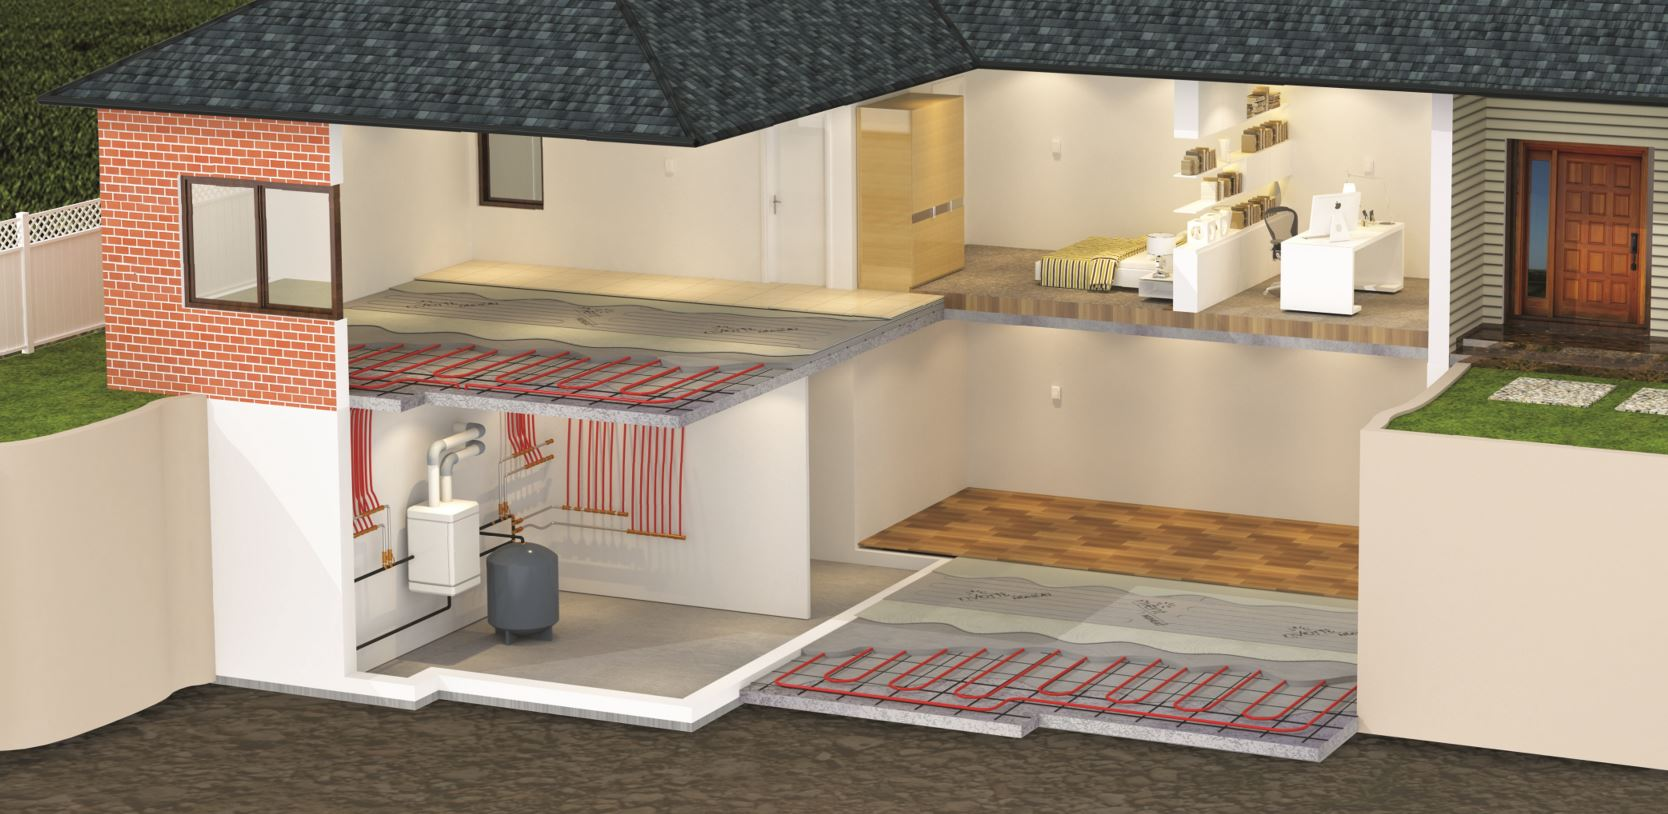 Combine nVent NUHEAT with Hydronic Heating Systems